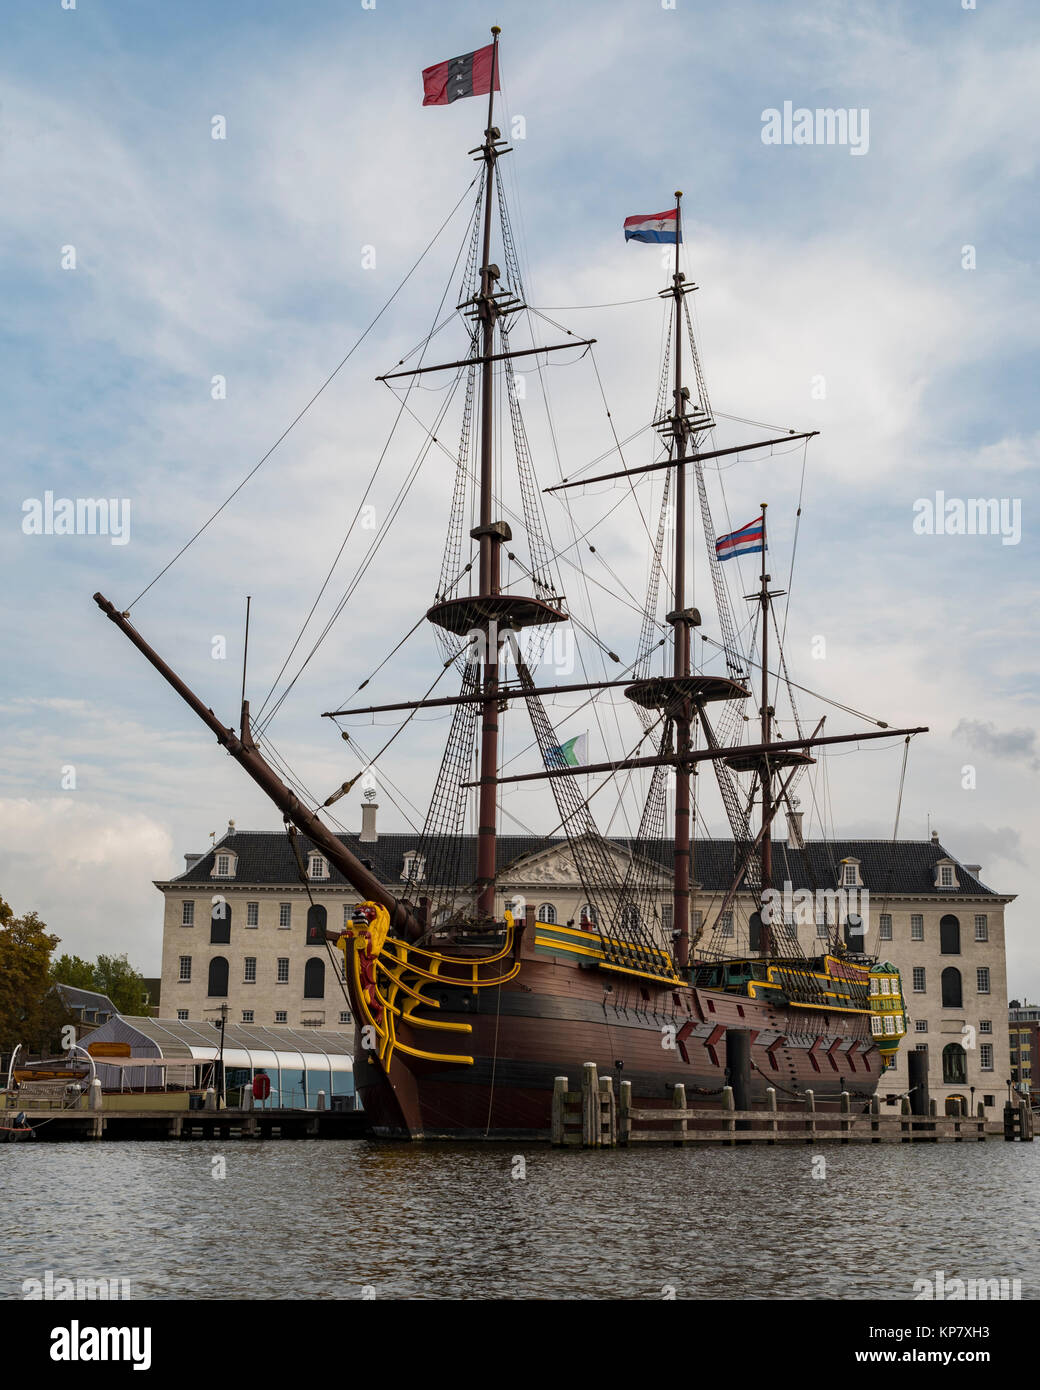 The Amsterdam, three-masted ship, clipper ship, replica, Dutch East India Company ship, Maritime Museum, Amsterdam, - Stock Image